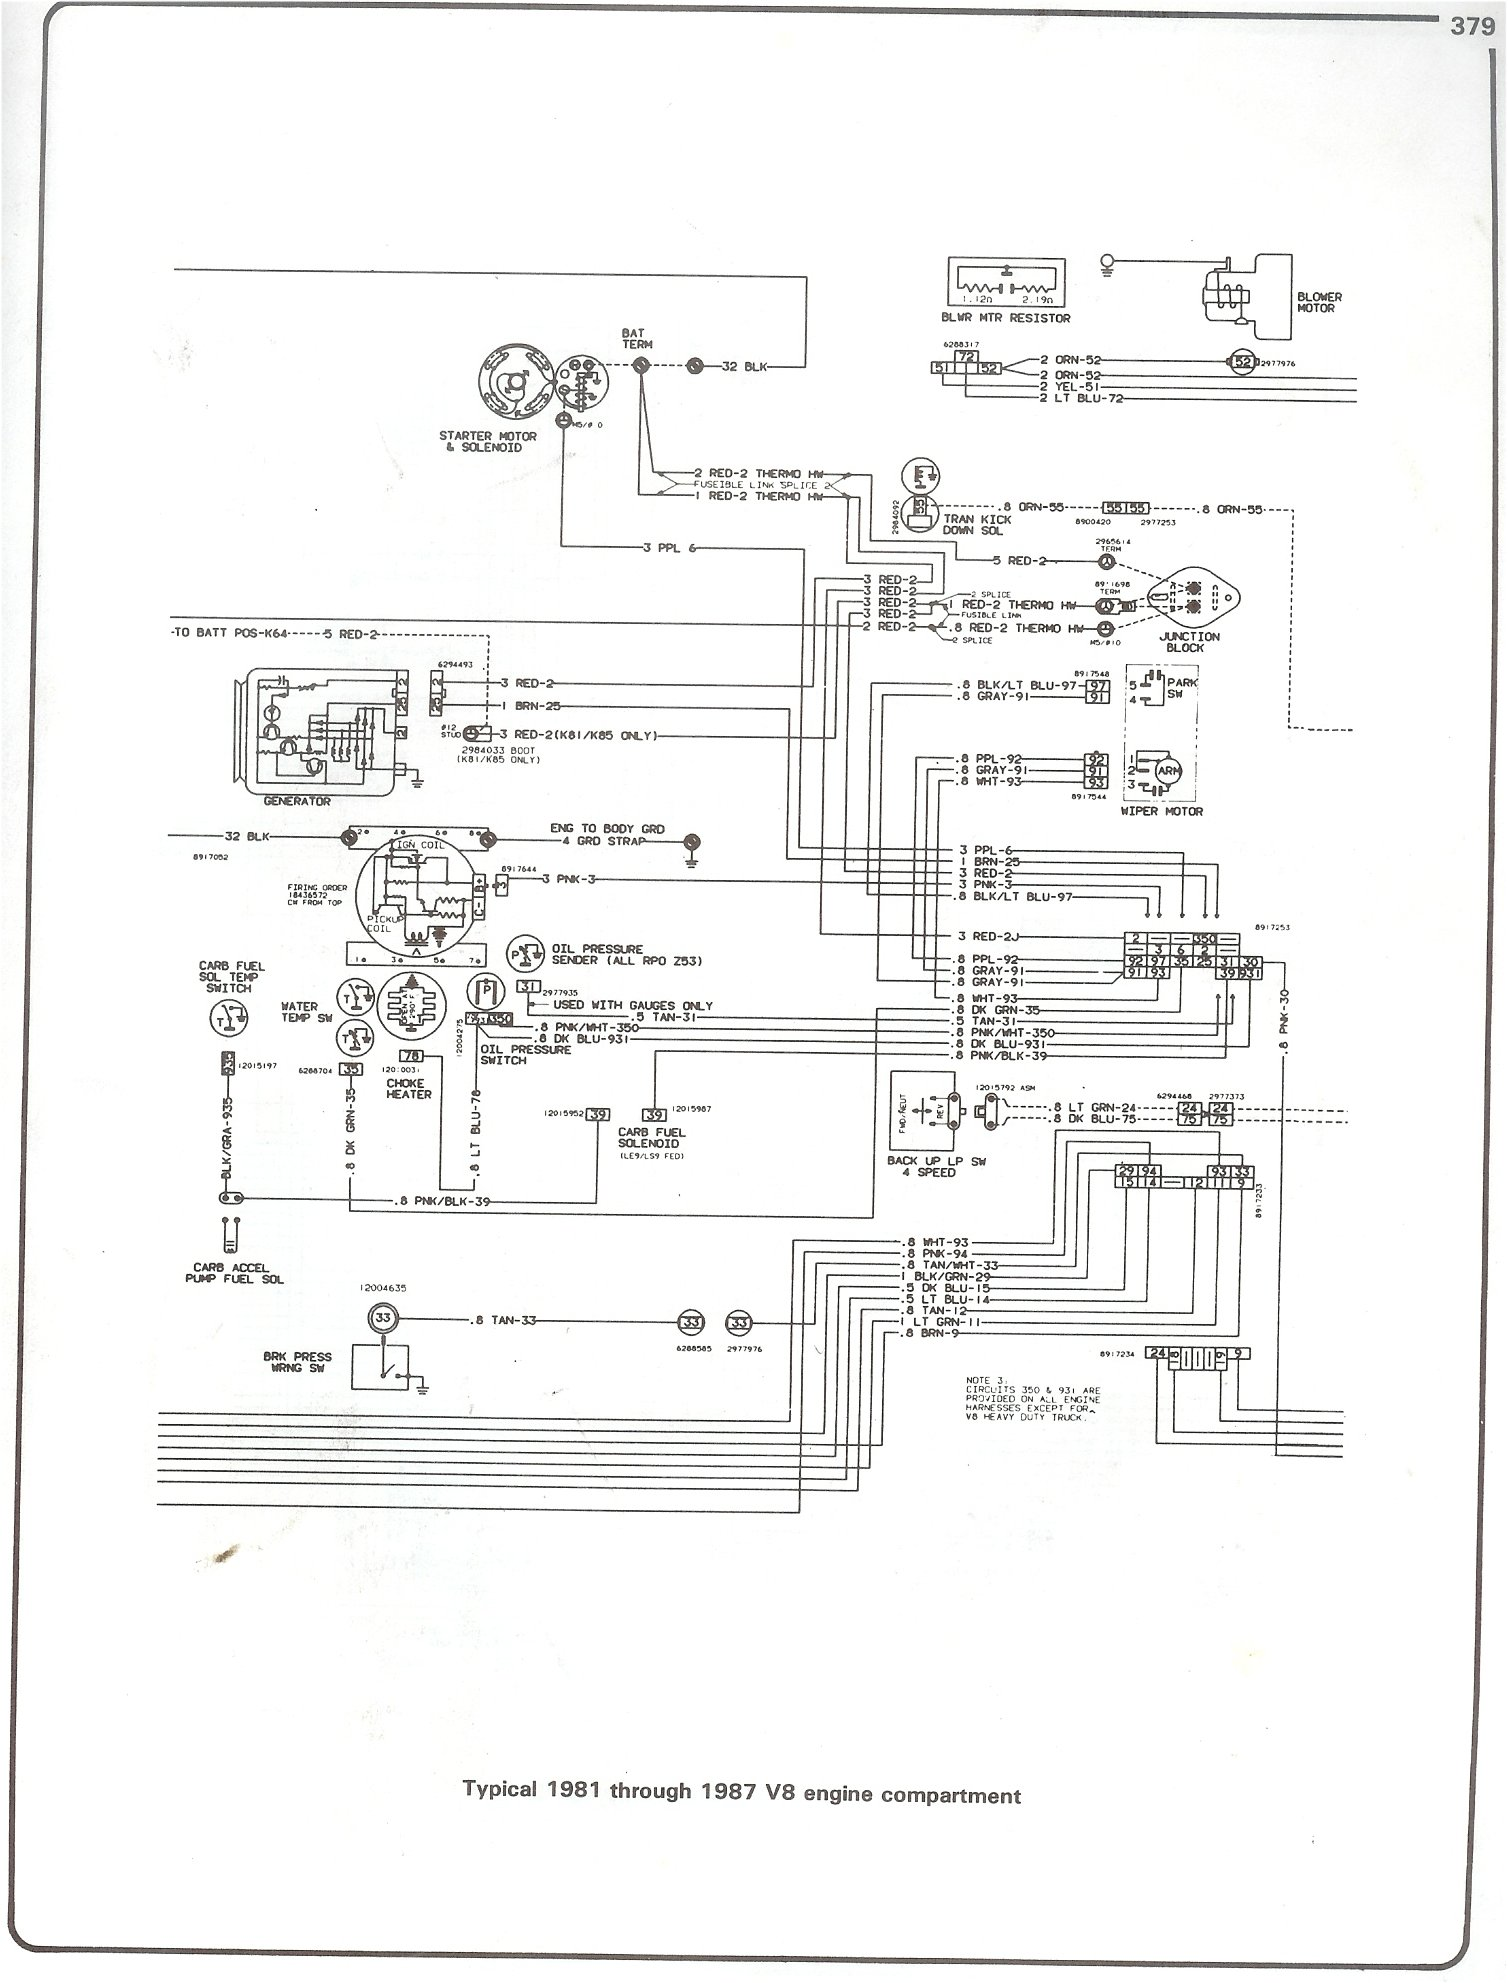 83 chevy wiring diagram wiring schematics diagram snatch block diagrams 86 suburban wiring diagram detailed schematics diagram 83 ford 150 wiring diagram 83 chevy wiring diagram